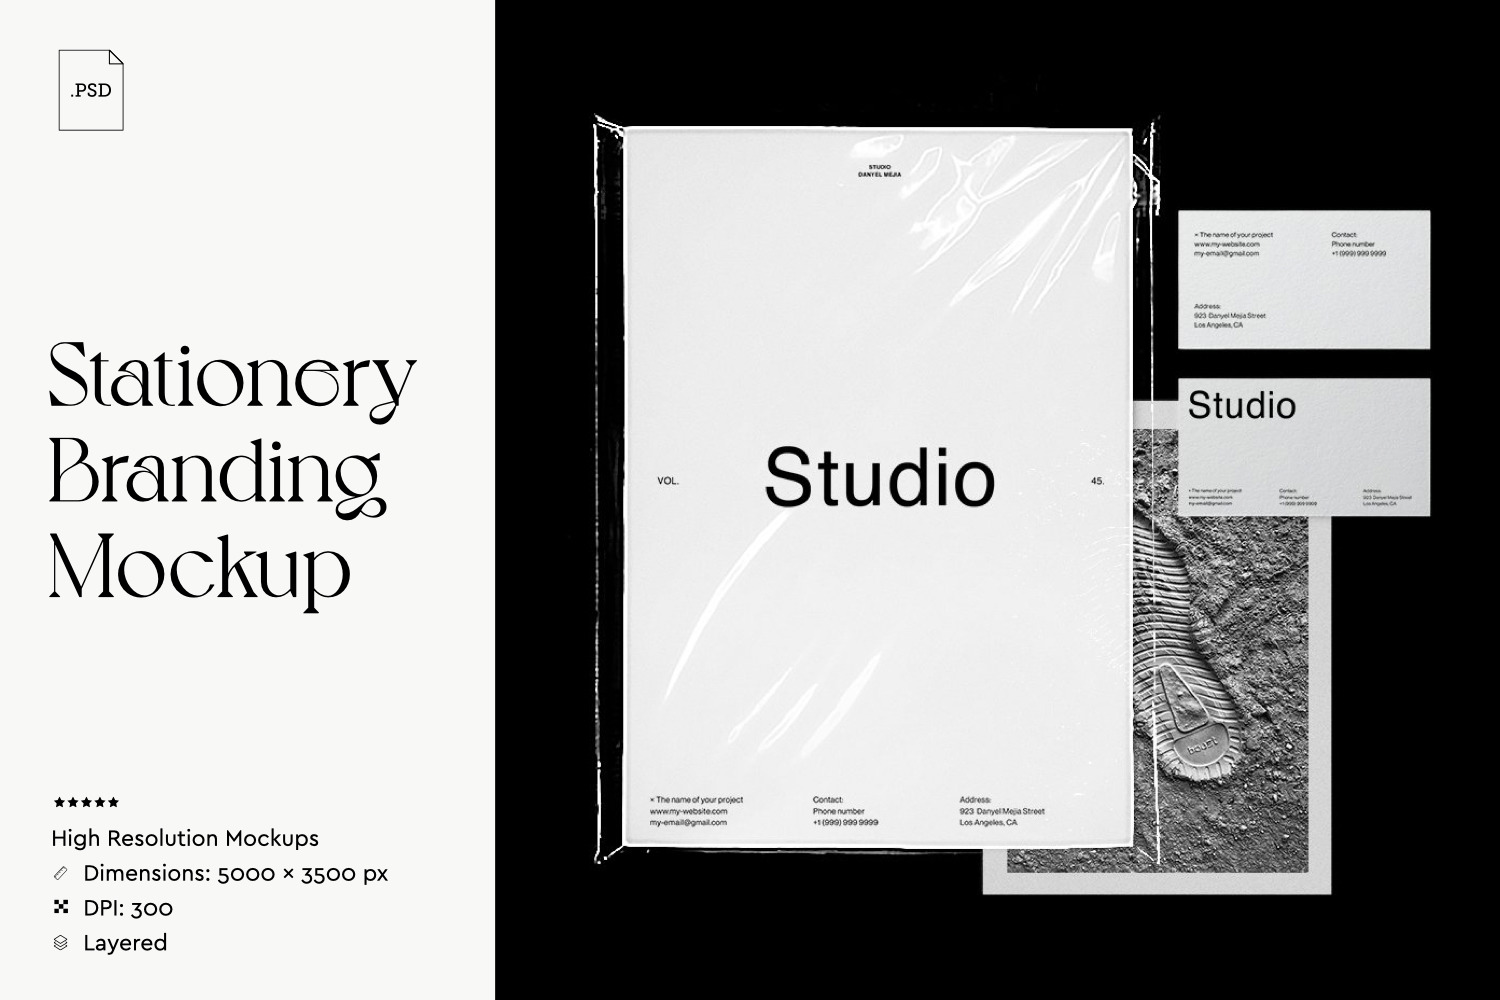 Sationery Branding Mockup In Corporate Identity Templates On